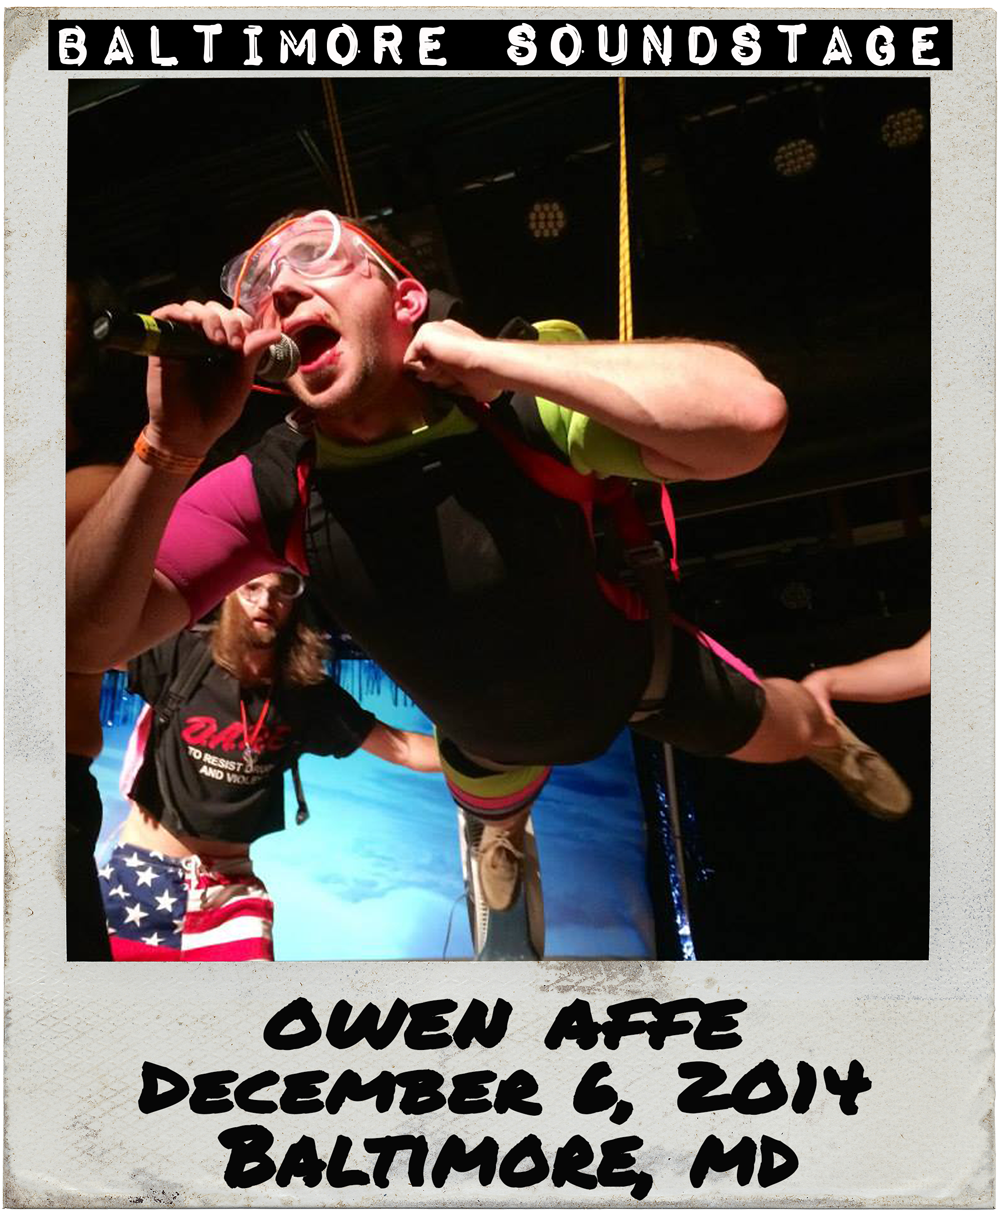 12_06_14_Owen-Affe_Baltimore-Soundstage.png